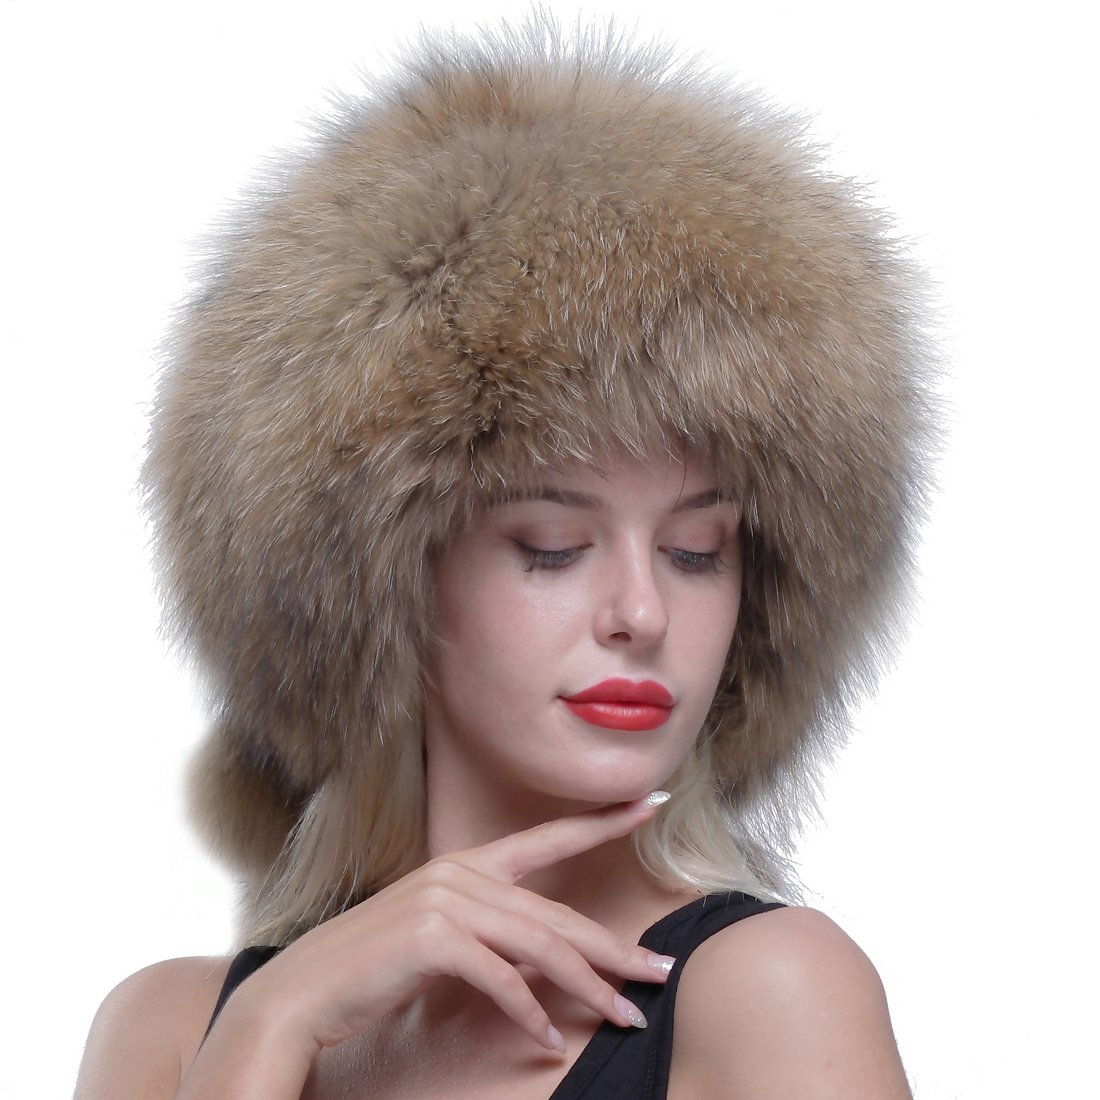 URSFUR Genuine Raccoon Fur Russian Ushanka Trapper Hat Cap with Fur Ball Pompom .Ltd. 2016-H-014-1